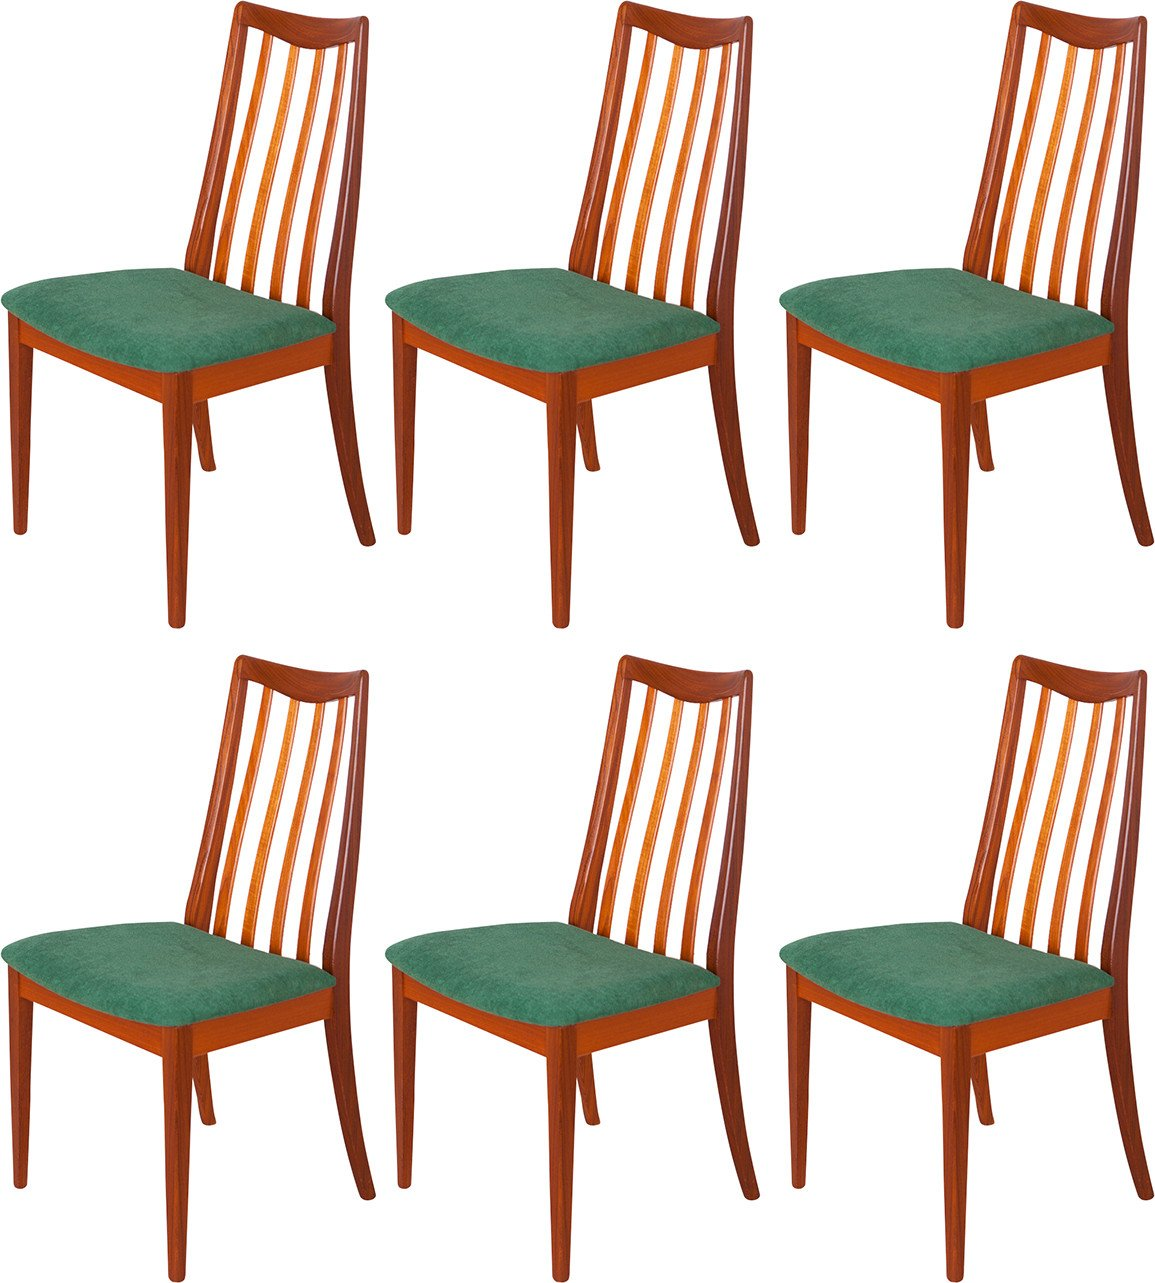 Set of Six Chairs by L. Dandy for G-Plan, United Kingdom, 1960s